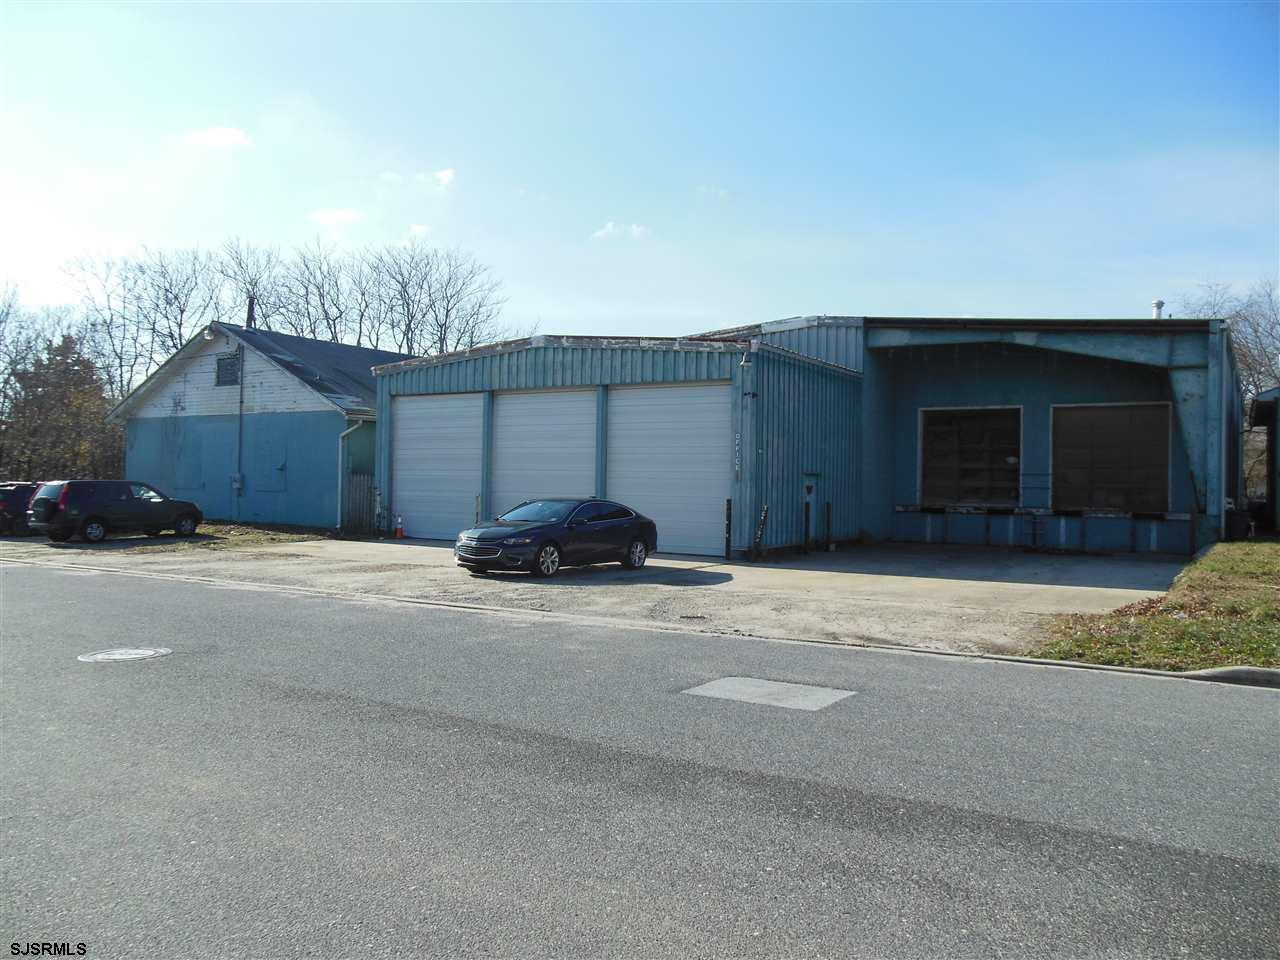 Great Opportunity to own approx. 9000 sq ft steel building with solid concrete floor, well insulated, natural gas heat, public utilities & loading docks. Clean wide open space , has an office area, break room and a bathroom. Also listed for rent , see mls # 515036... Call listing agent for details